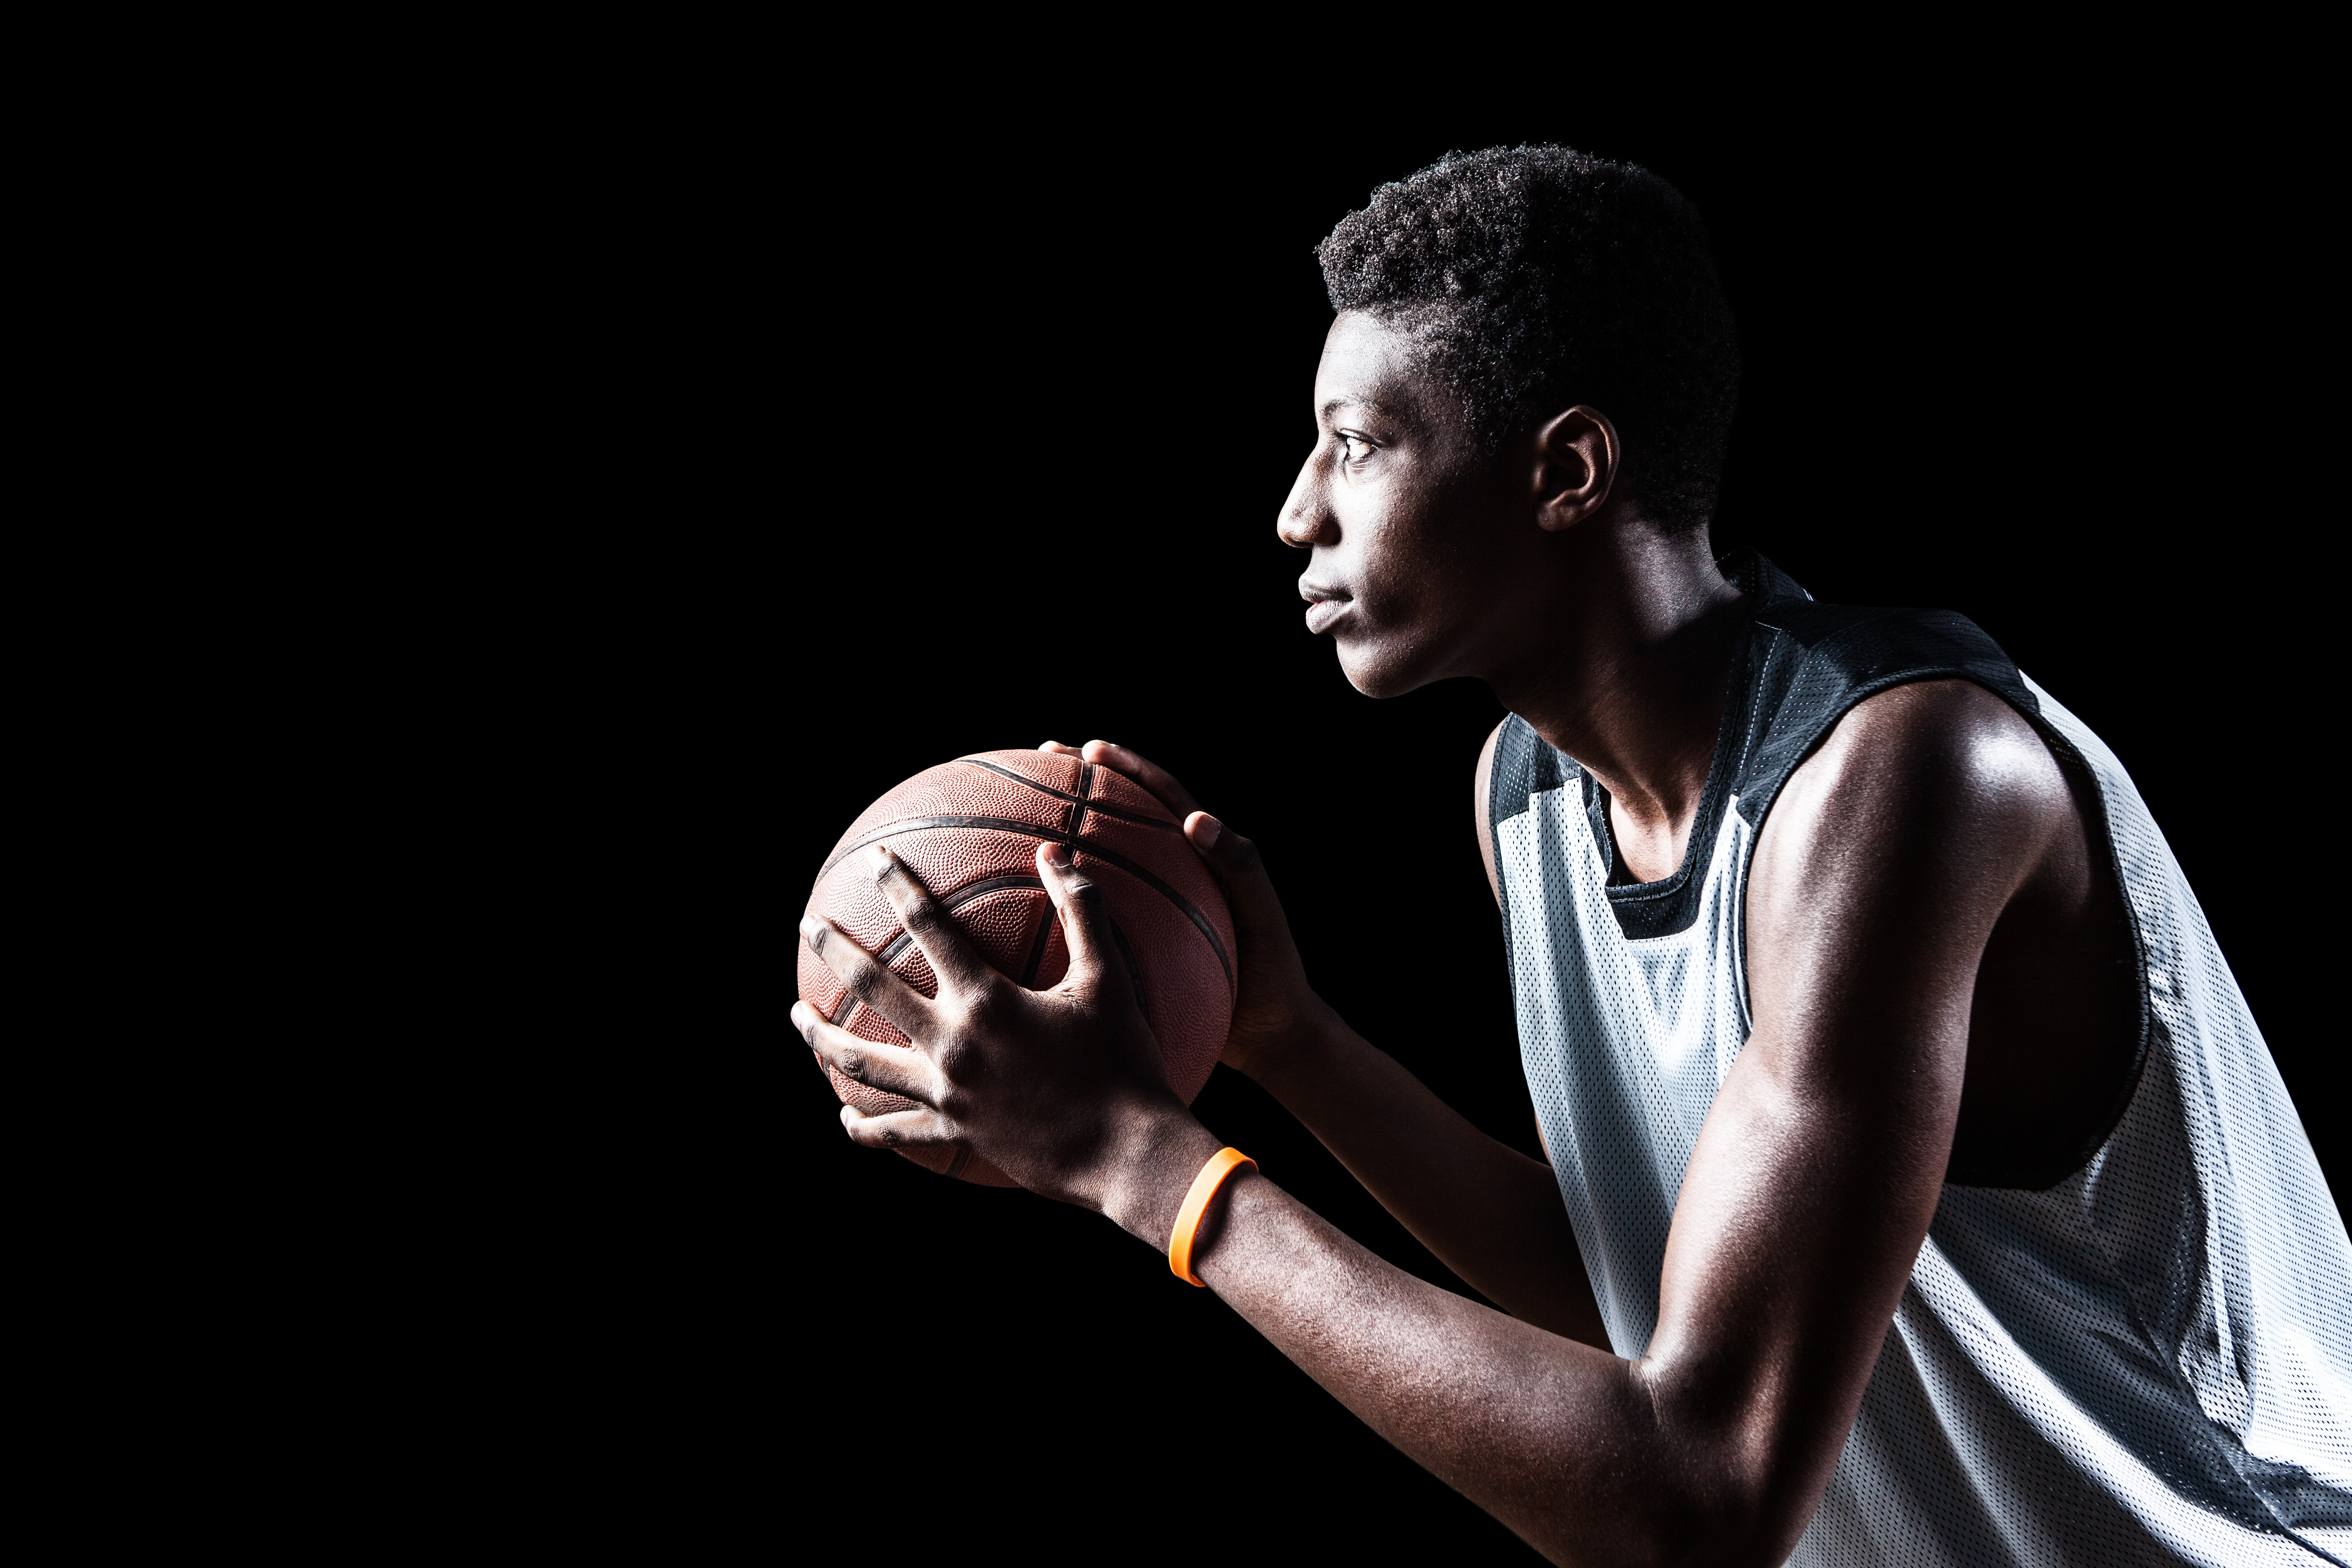 Young basketball player isolated on black background